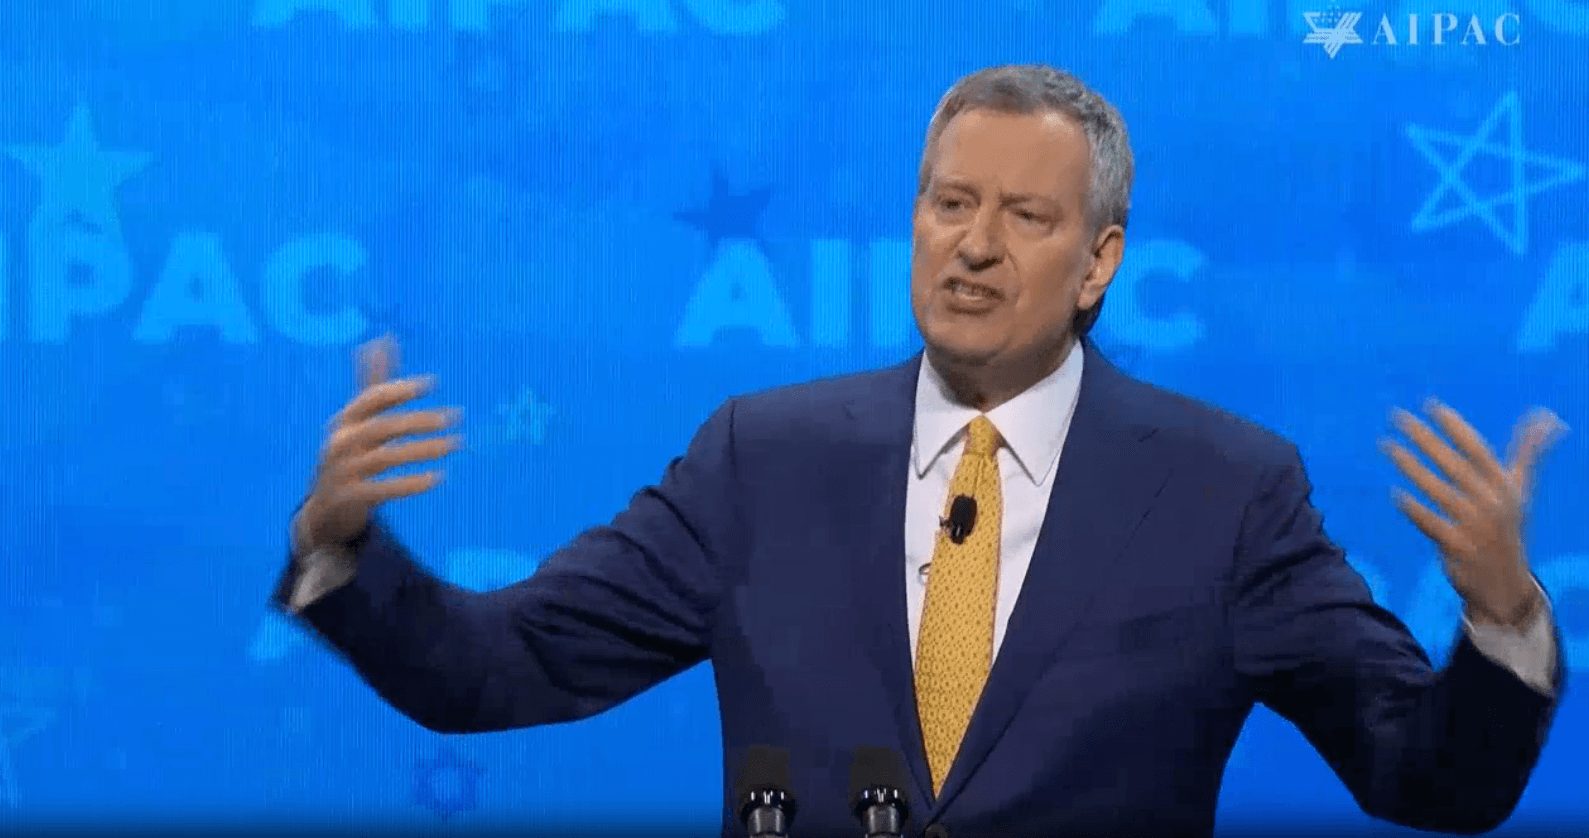 NY Mayor Bill de Blasio addresses AIPAC policy conference, March 25, 2019. Screenshot from AIPAC livestream.